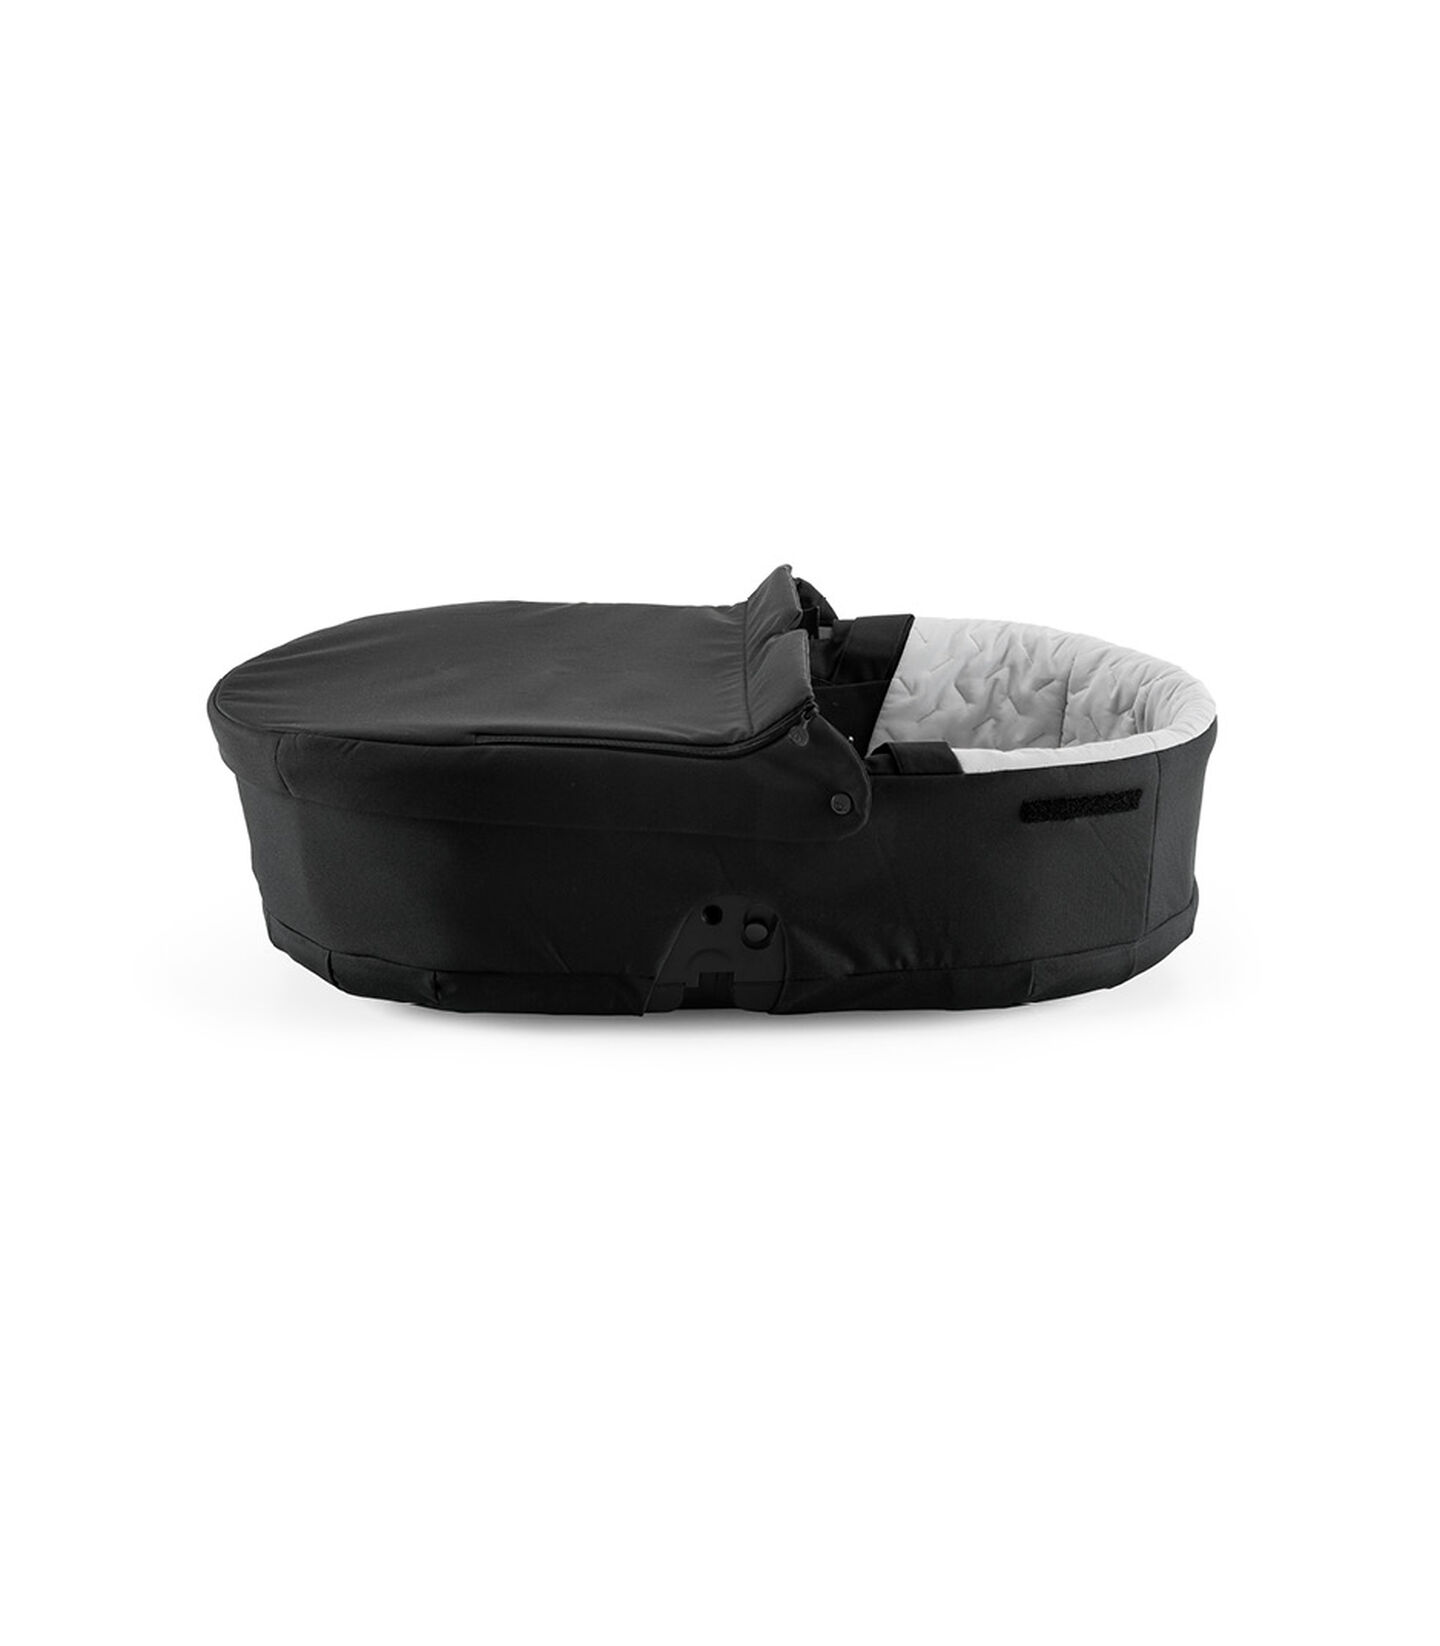 Stokke® Beat™ sparepart. Carry Cot Textile, Black. view 1